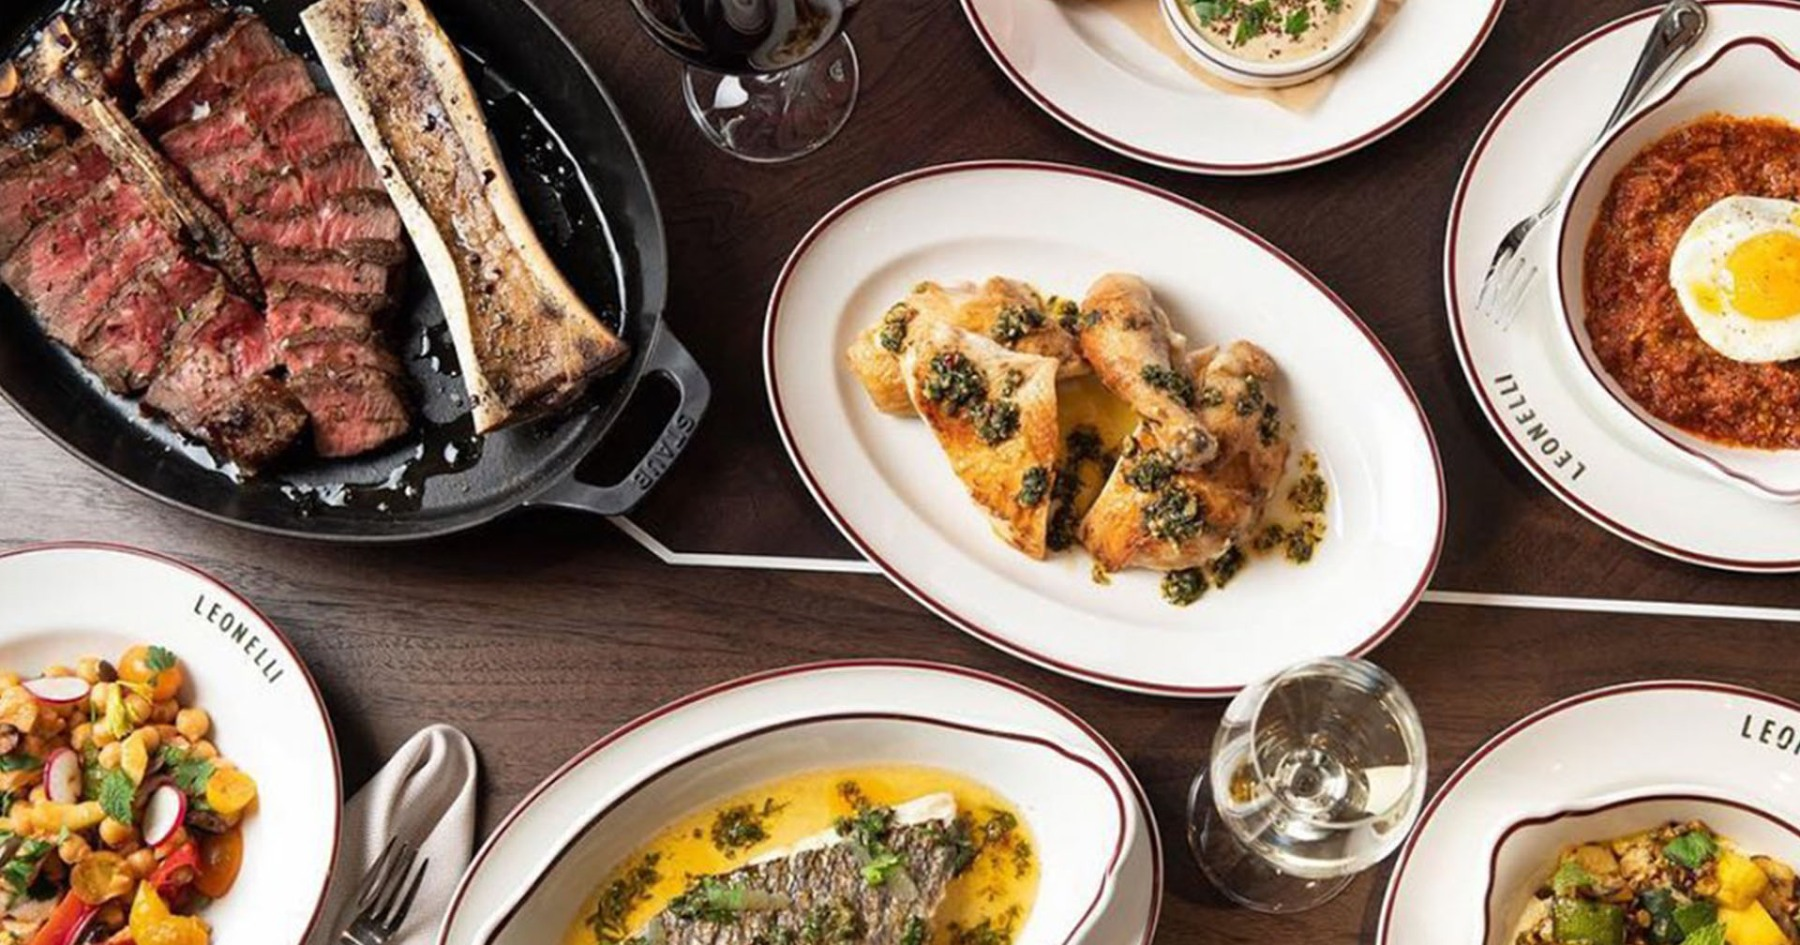 The 10 Best Restaurants That Opened in NYC in 2018